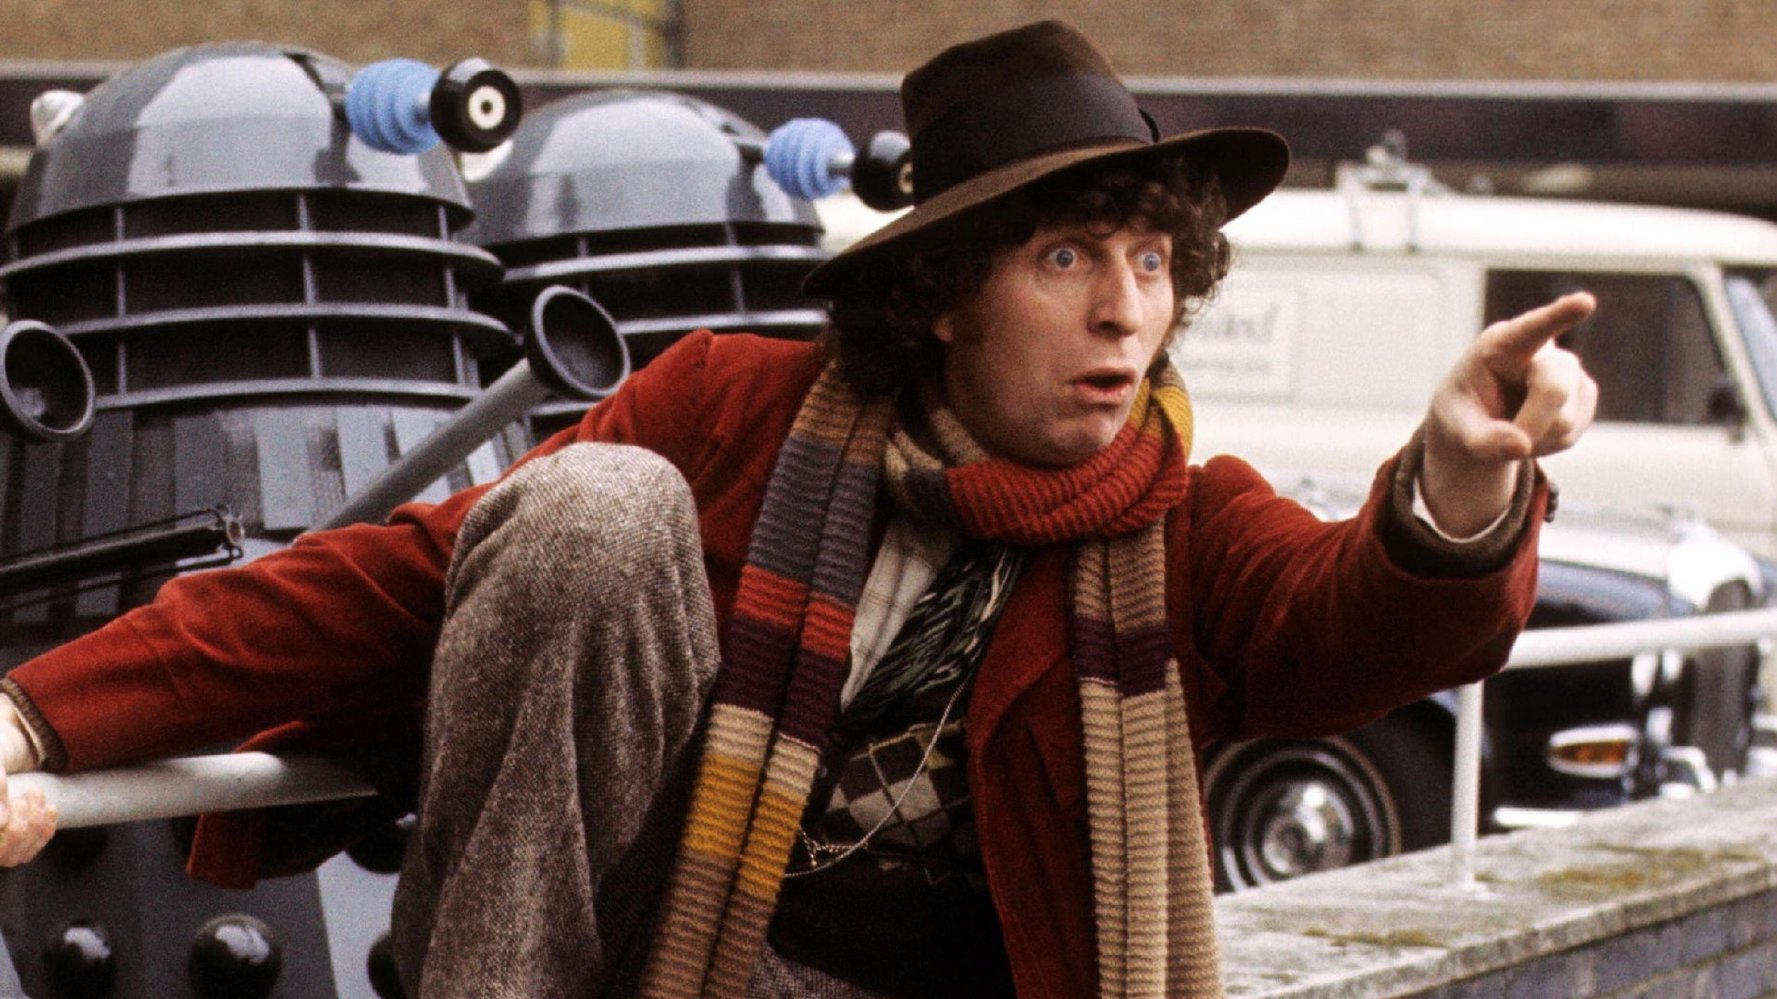 pictures Tom Baker (born 1934)